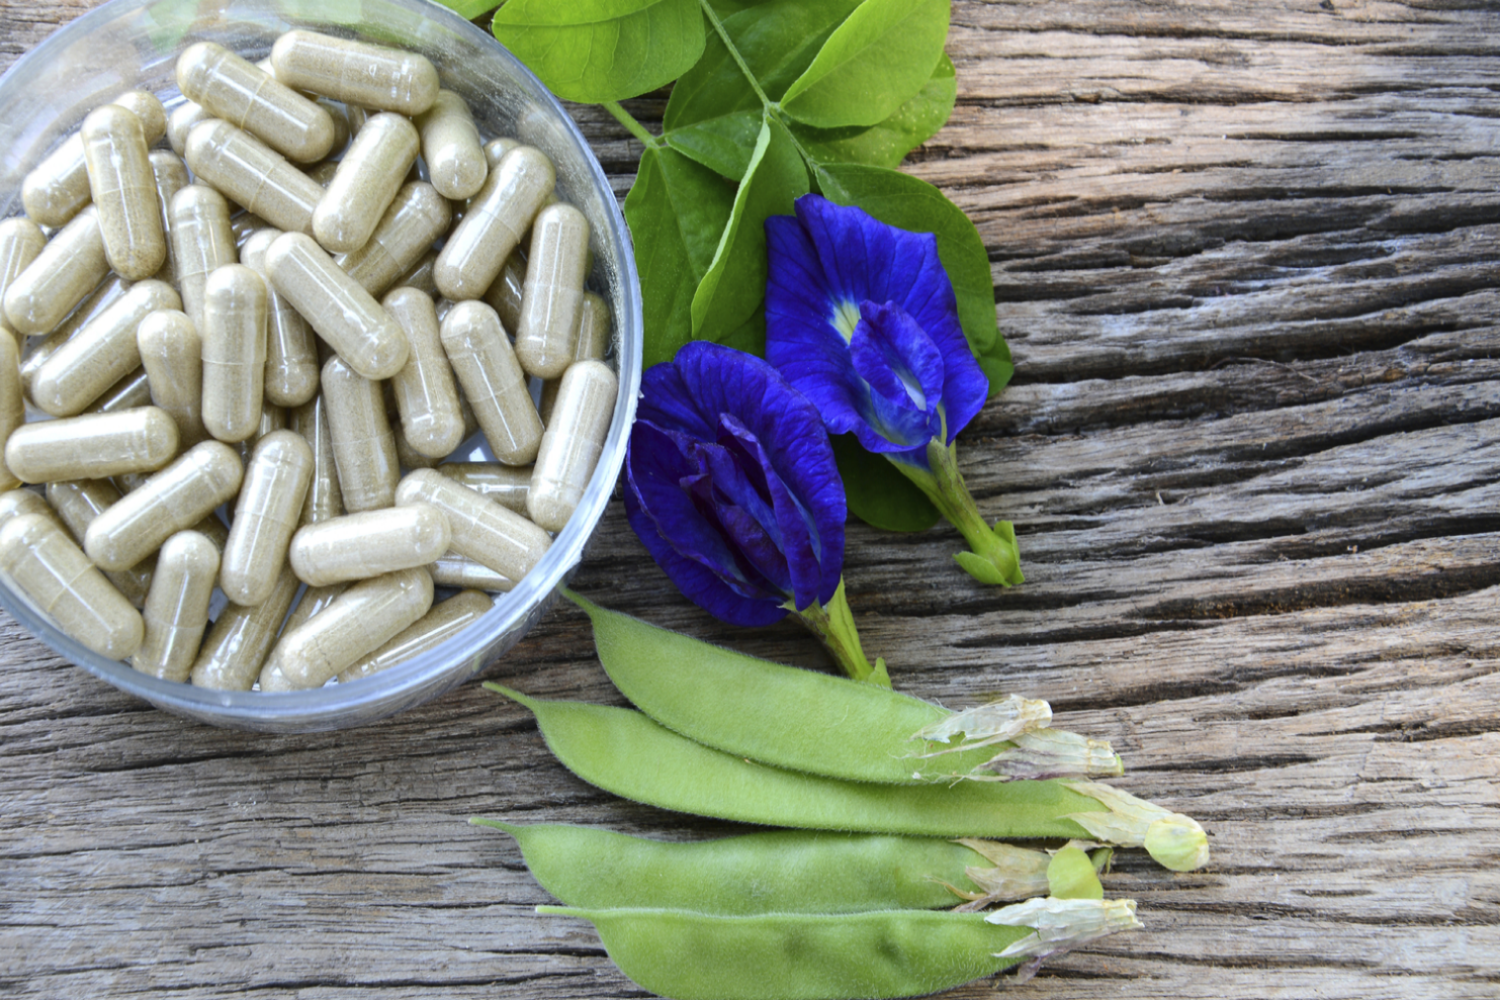 Clinically researched, Herban Theory supplements are formulated to deliver. Containing scientifically researched ingredients, our supplements can work to help you and your family to transform your life.